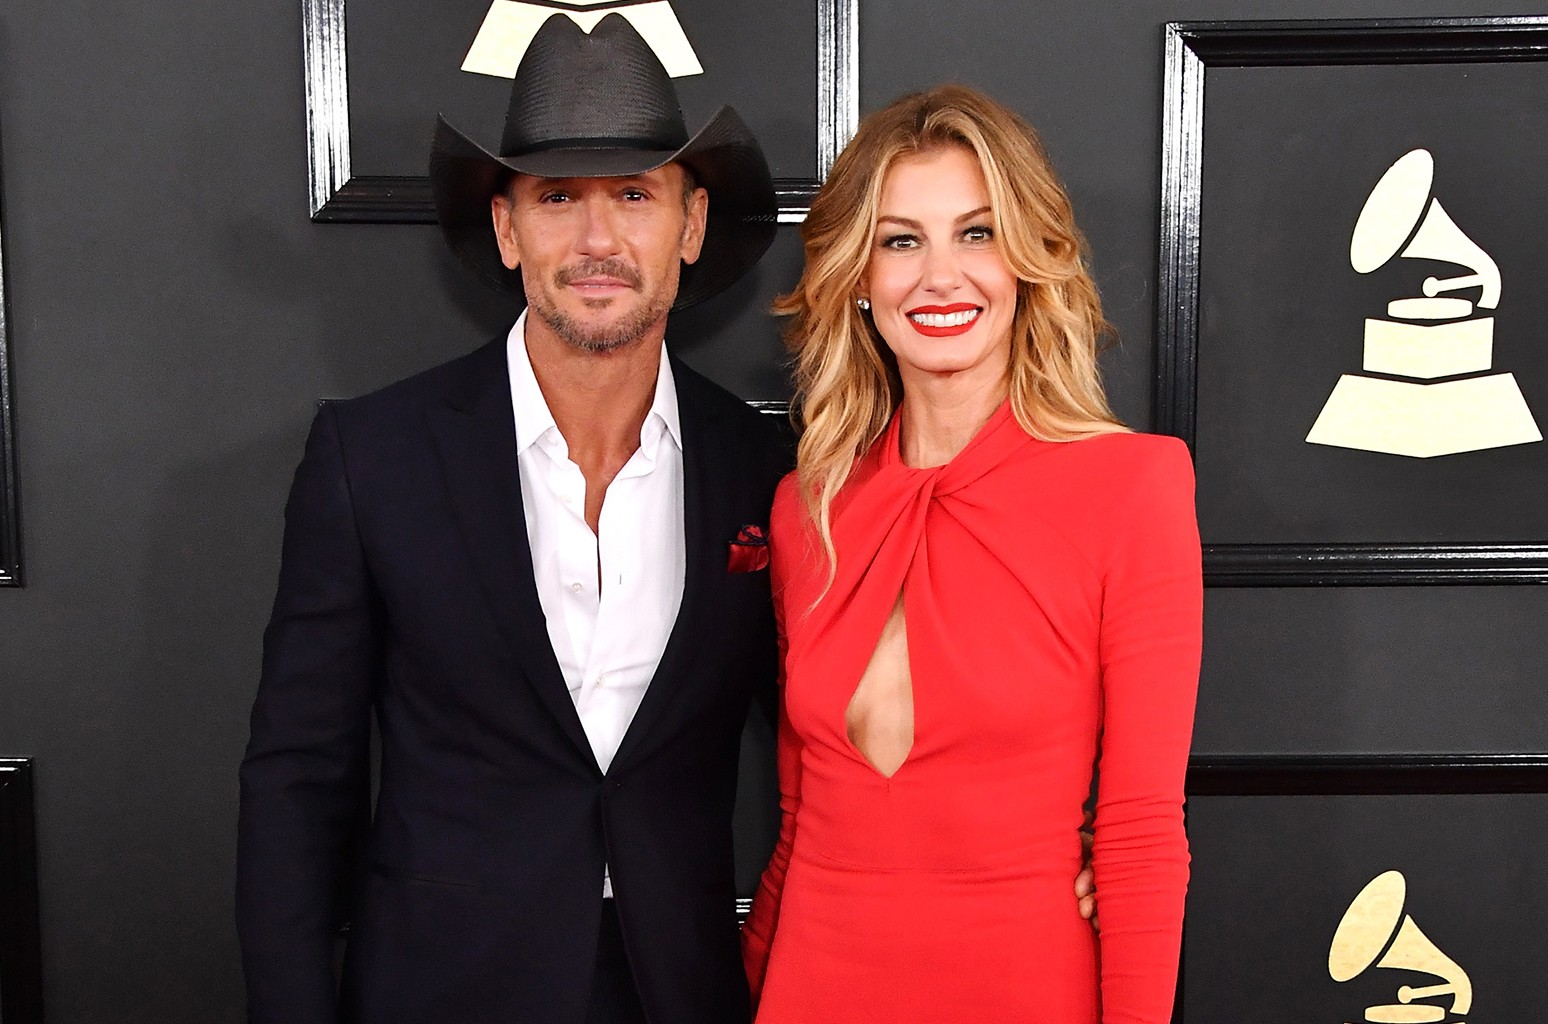 Tim McGraw and Faith Hill attend The 59th Grammy Awards at Staples Center on Feb. 12, 2017 in Los Angeles.